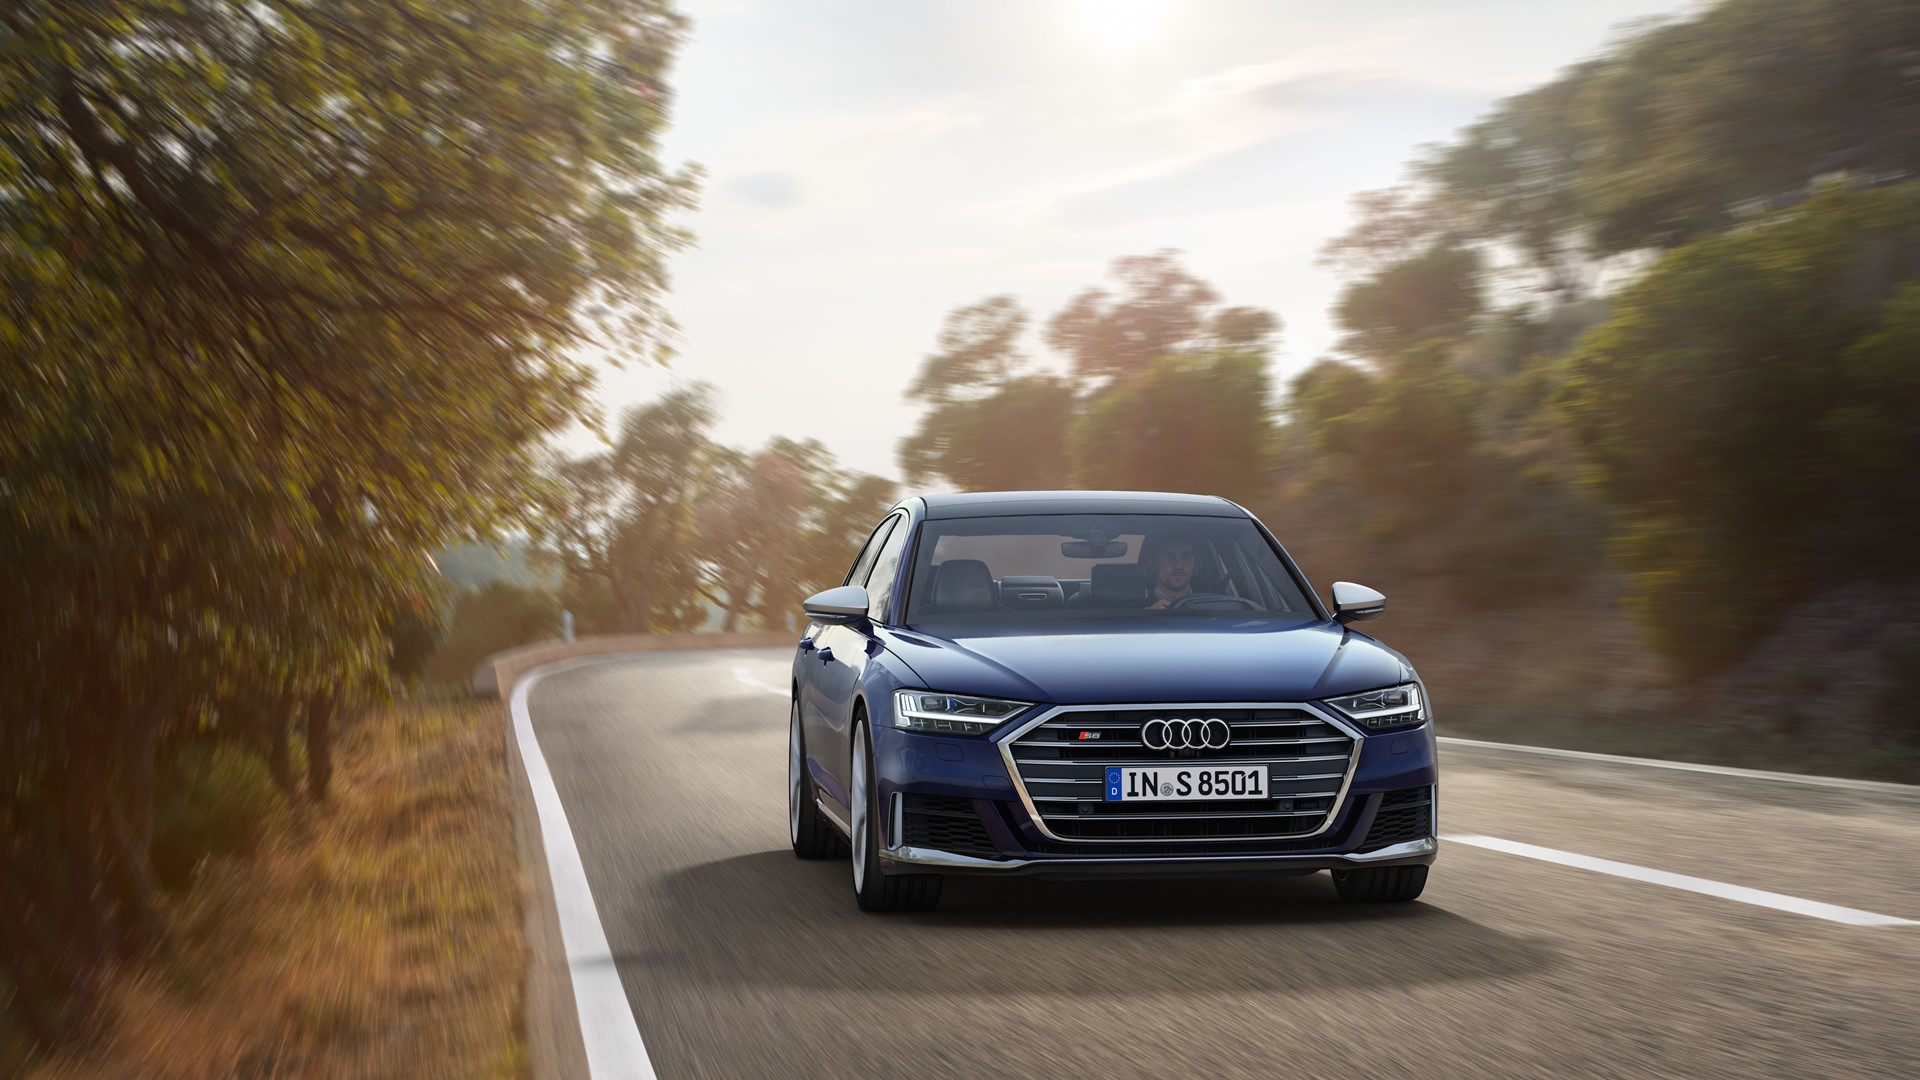 The New Audi S8 Exhilarating Performance In The Luxury Class